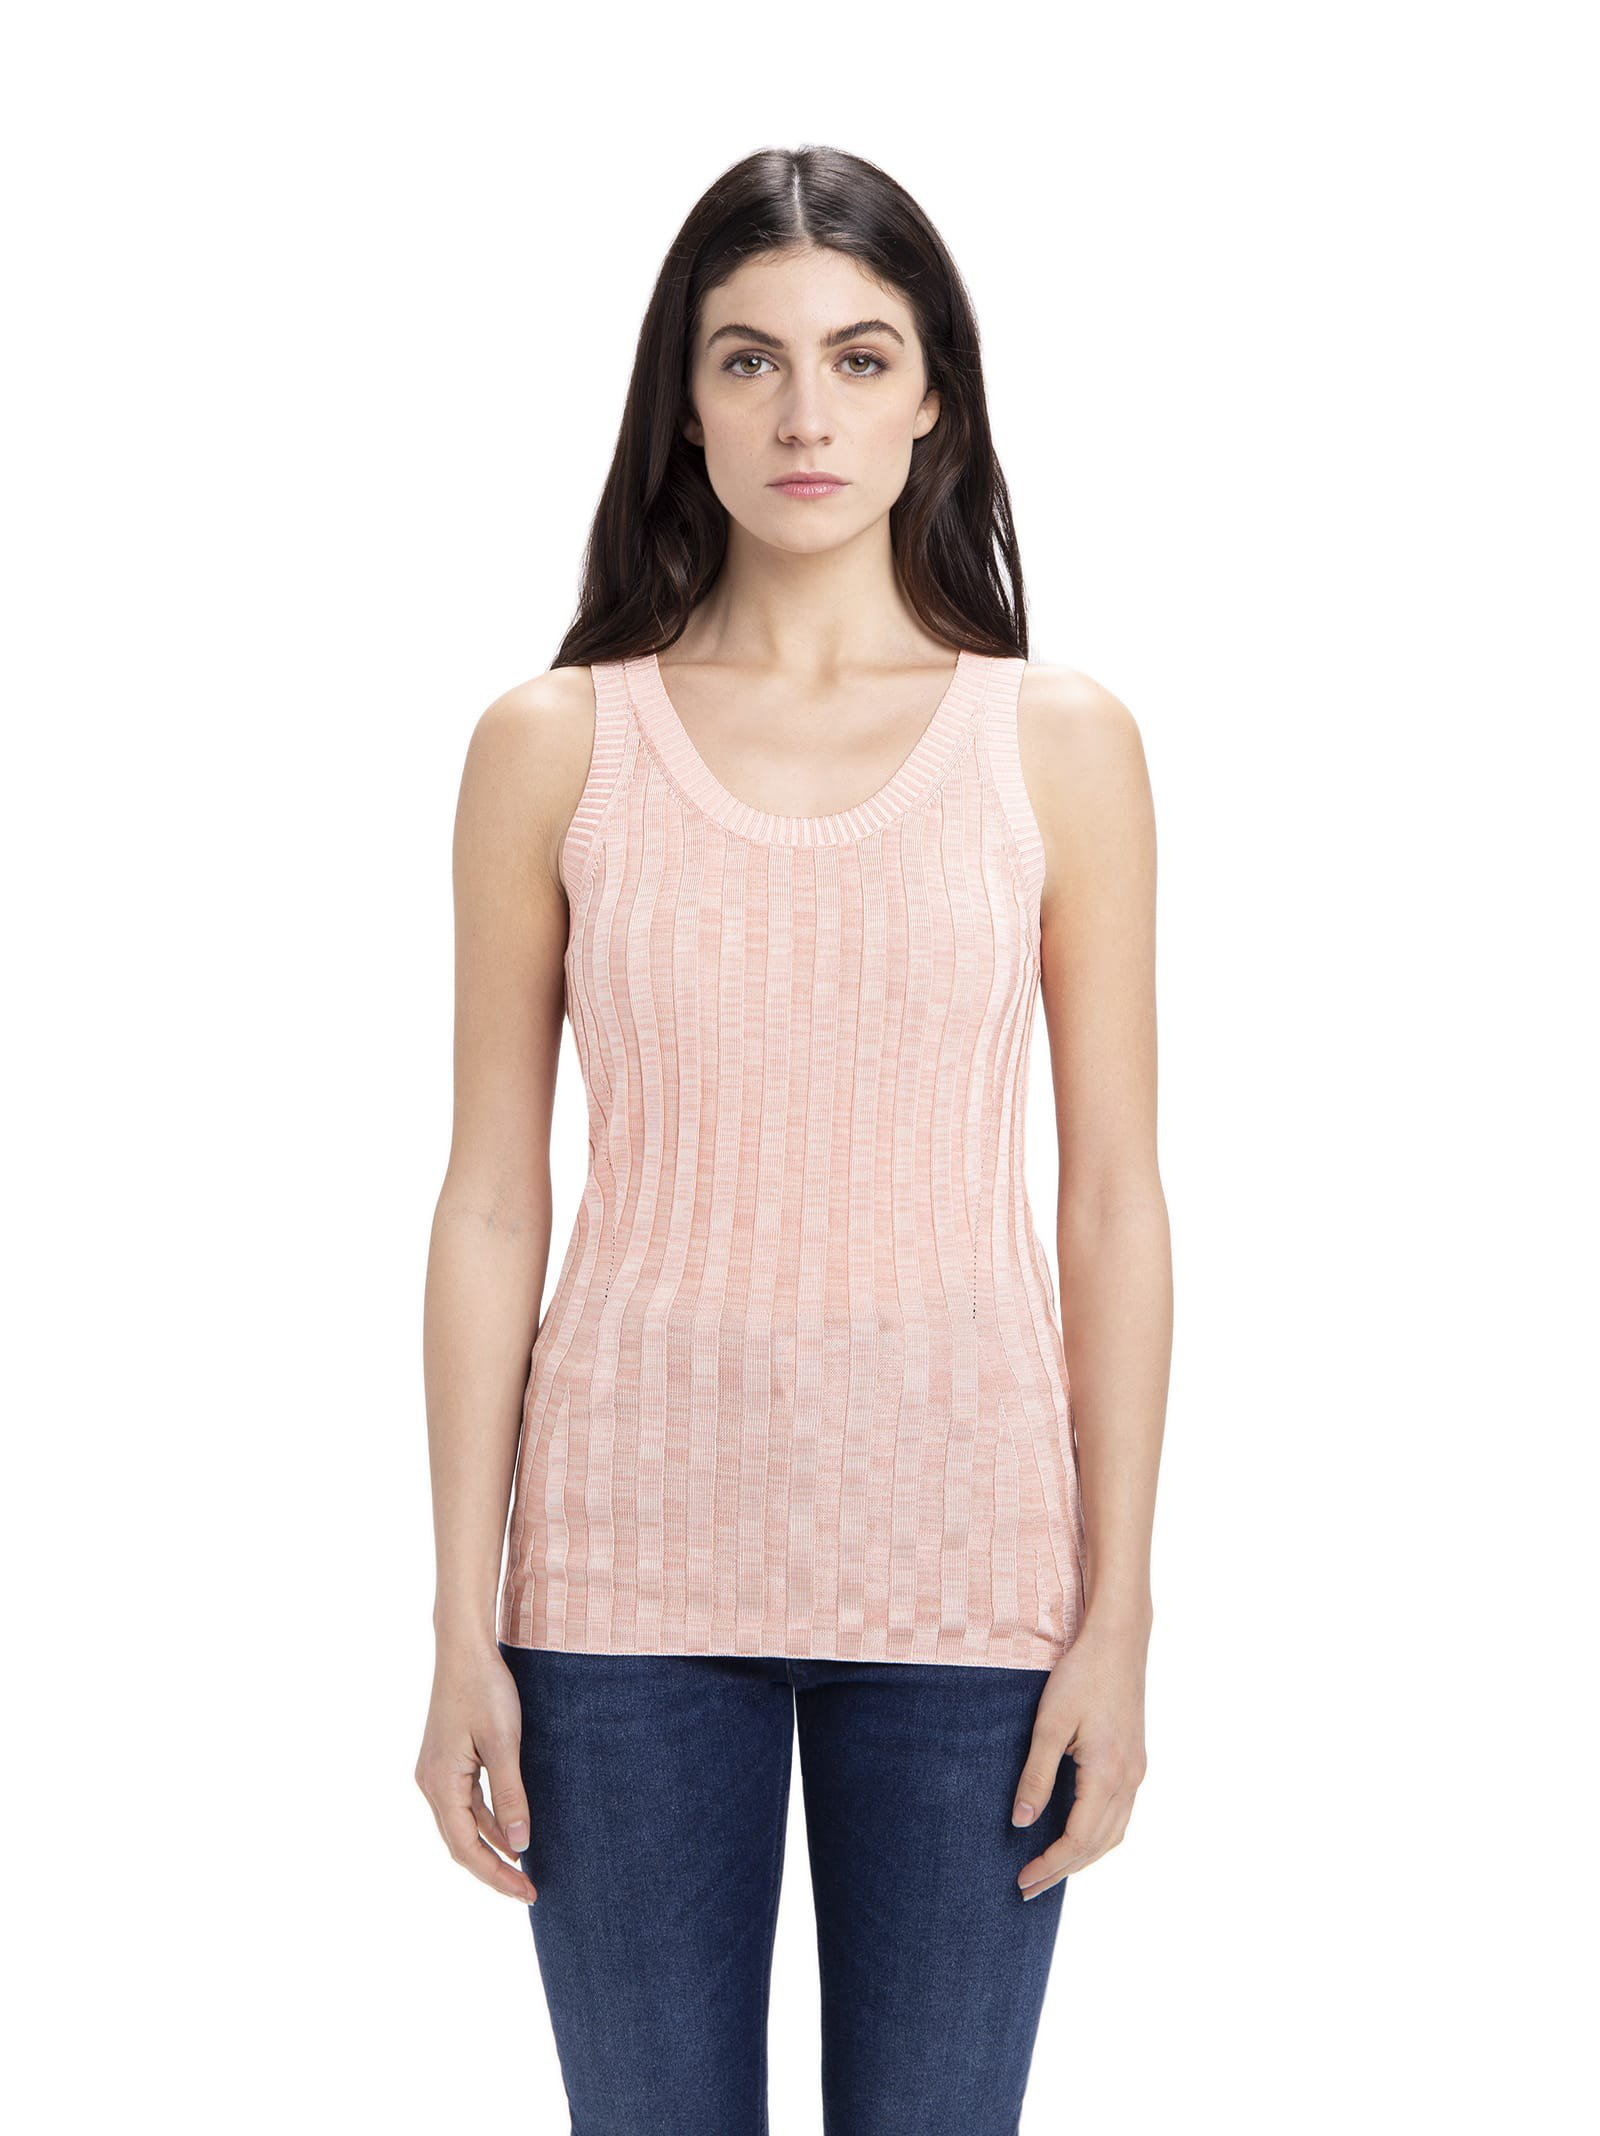 Acne Studios Knitted Tank Top